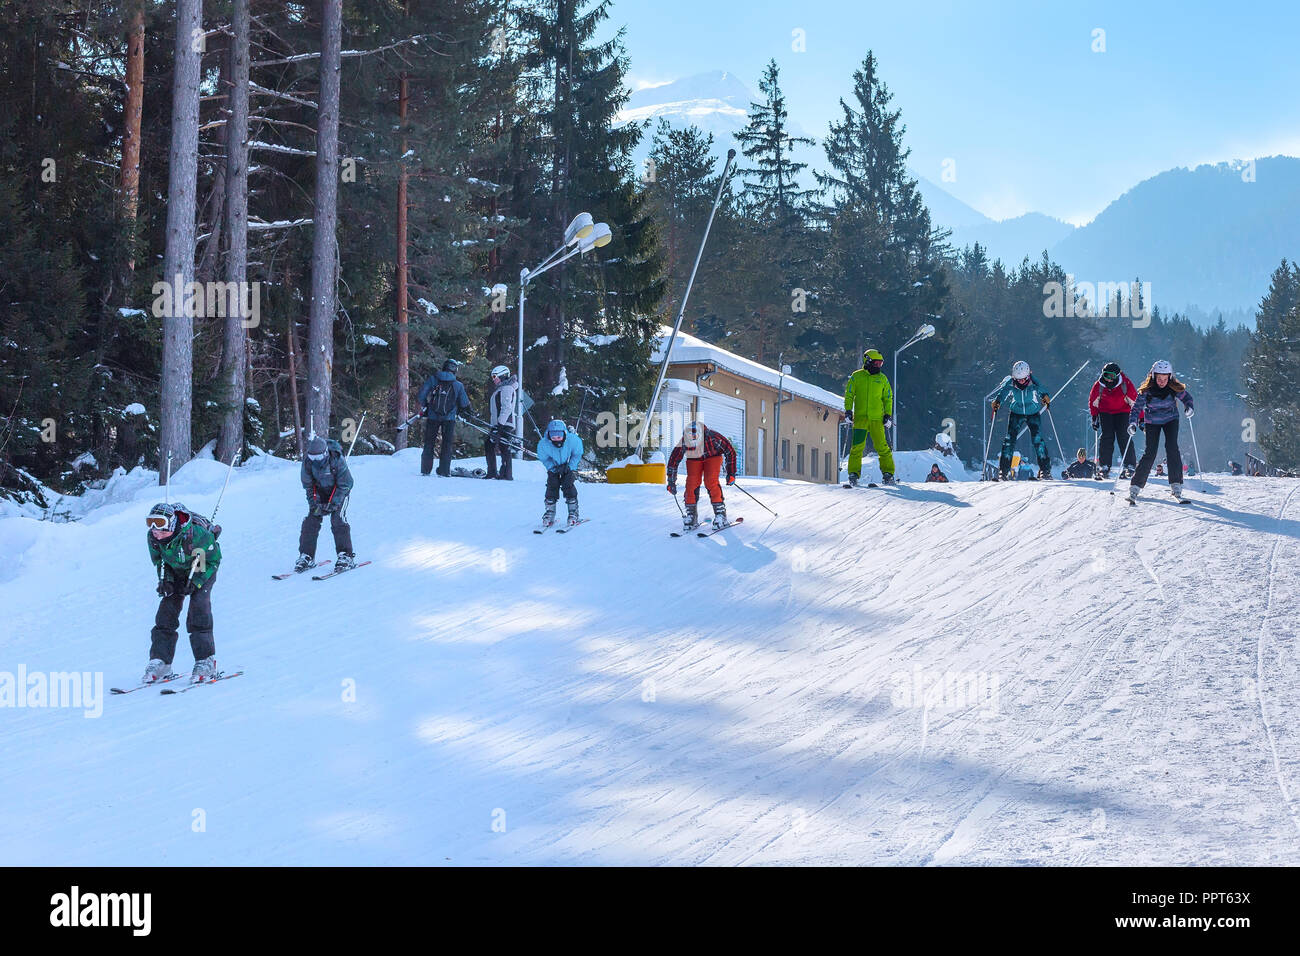 Bansko, Bulgaria - January 13, 2017: Winter ski resort Bansko, ski slope, people skiing and mountains view - Stock Image